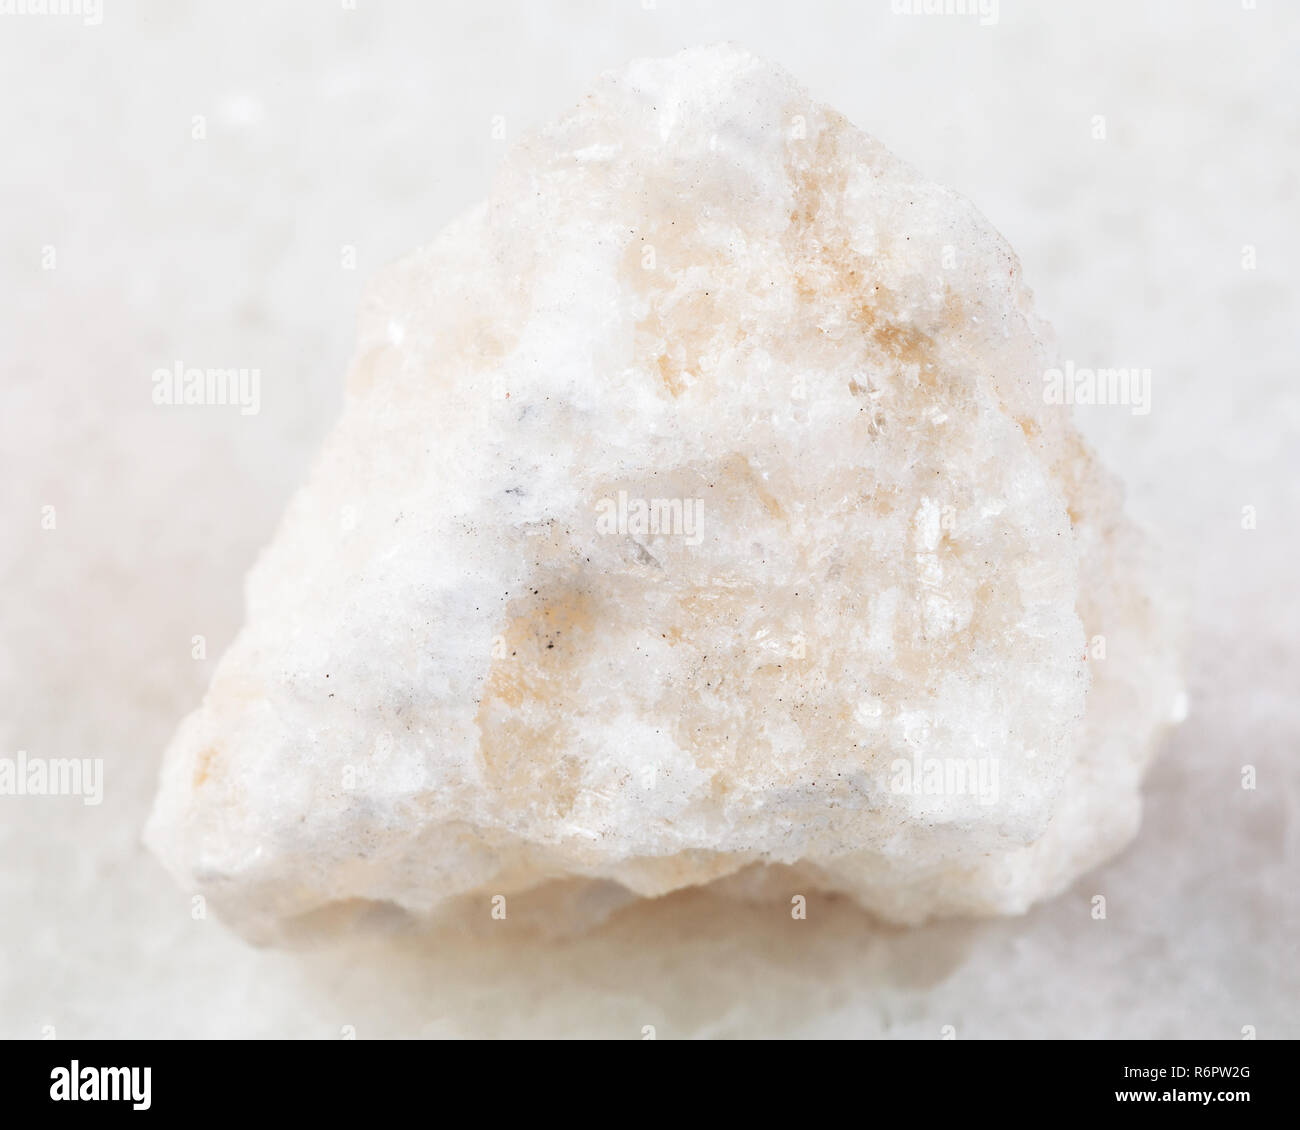 rough anhydrite stone on white - Stock Image